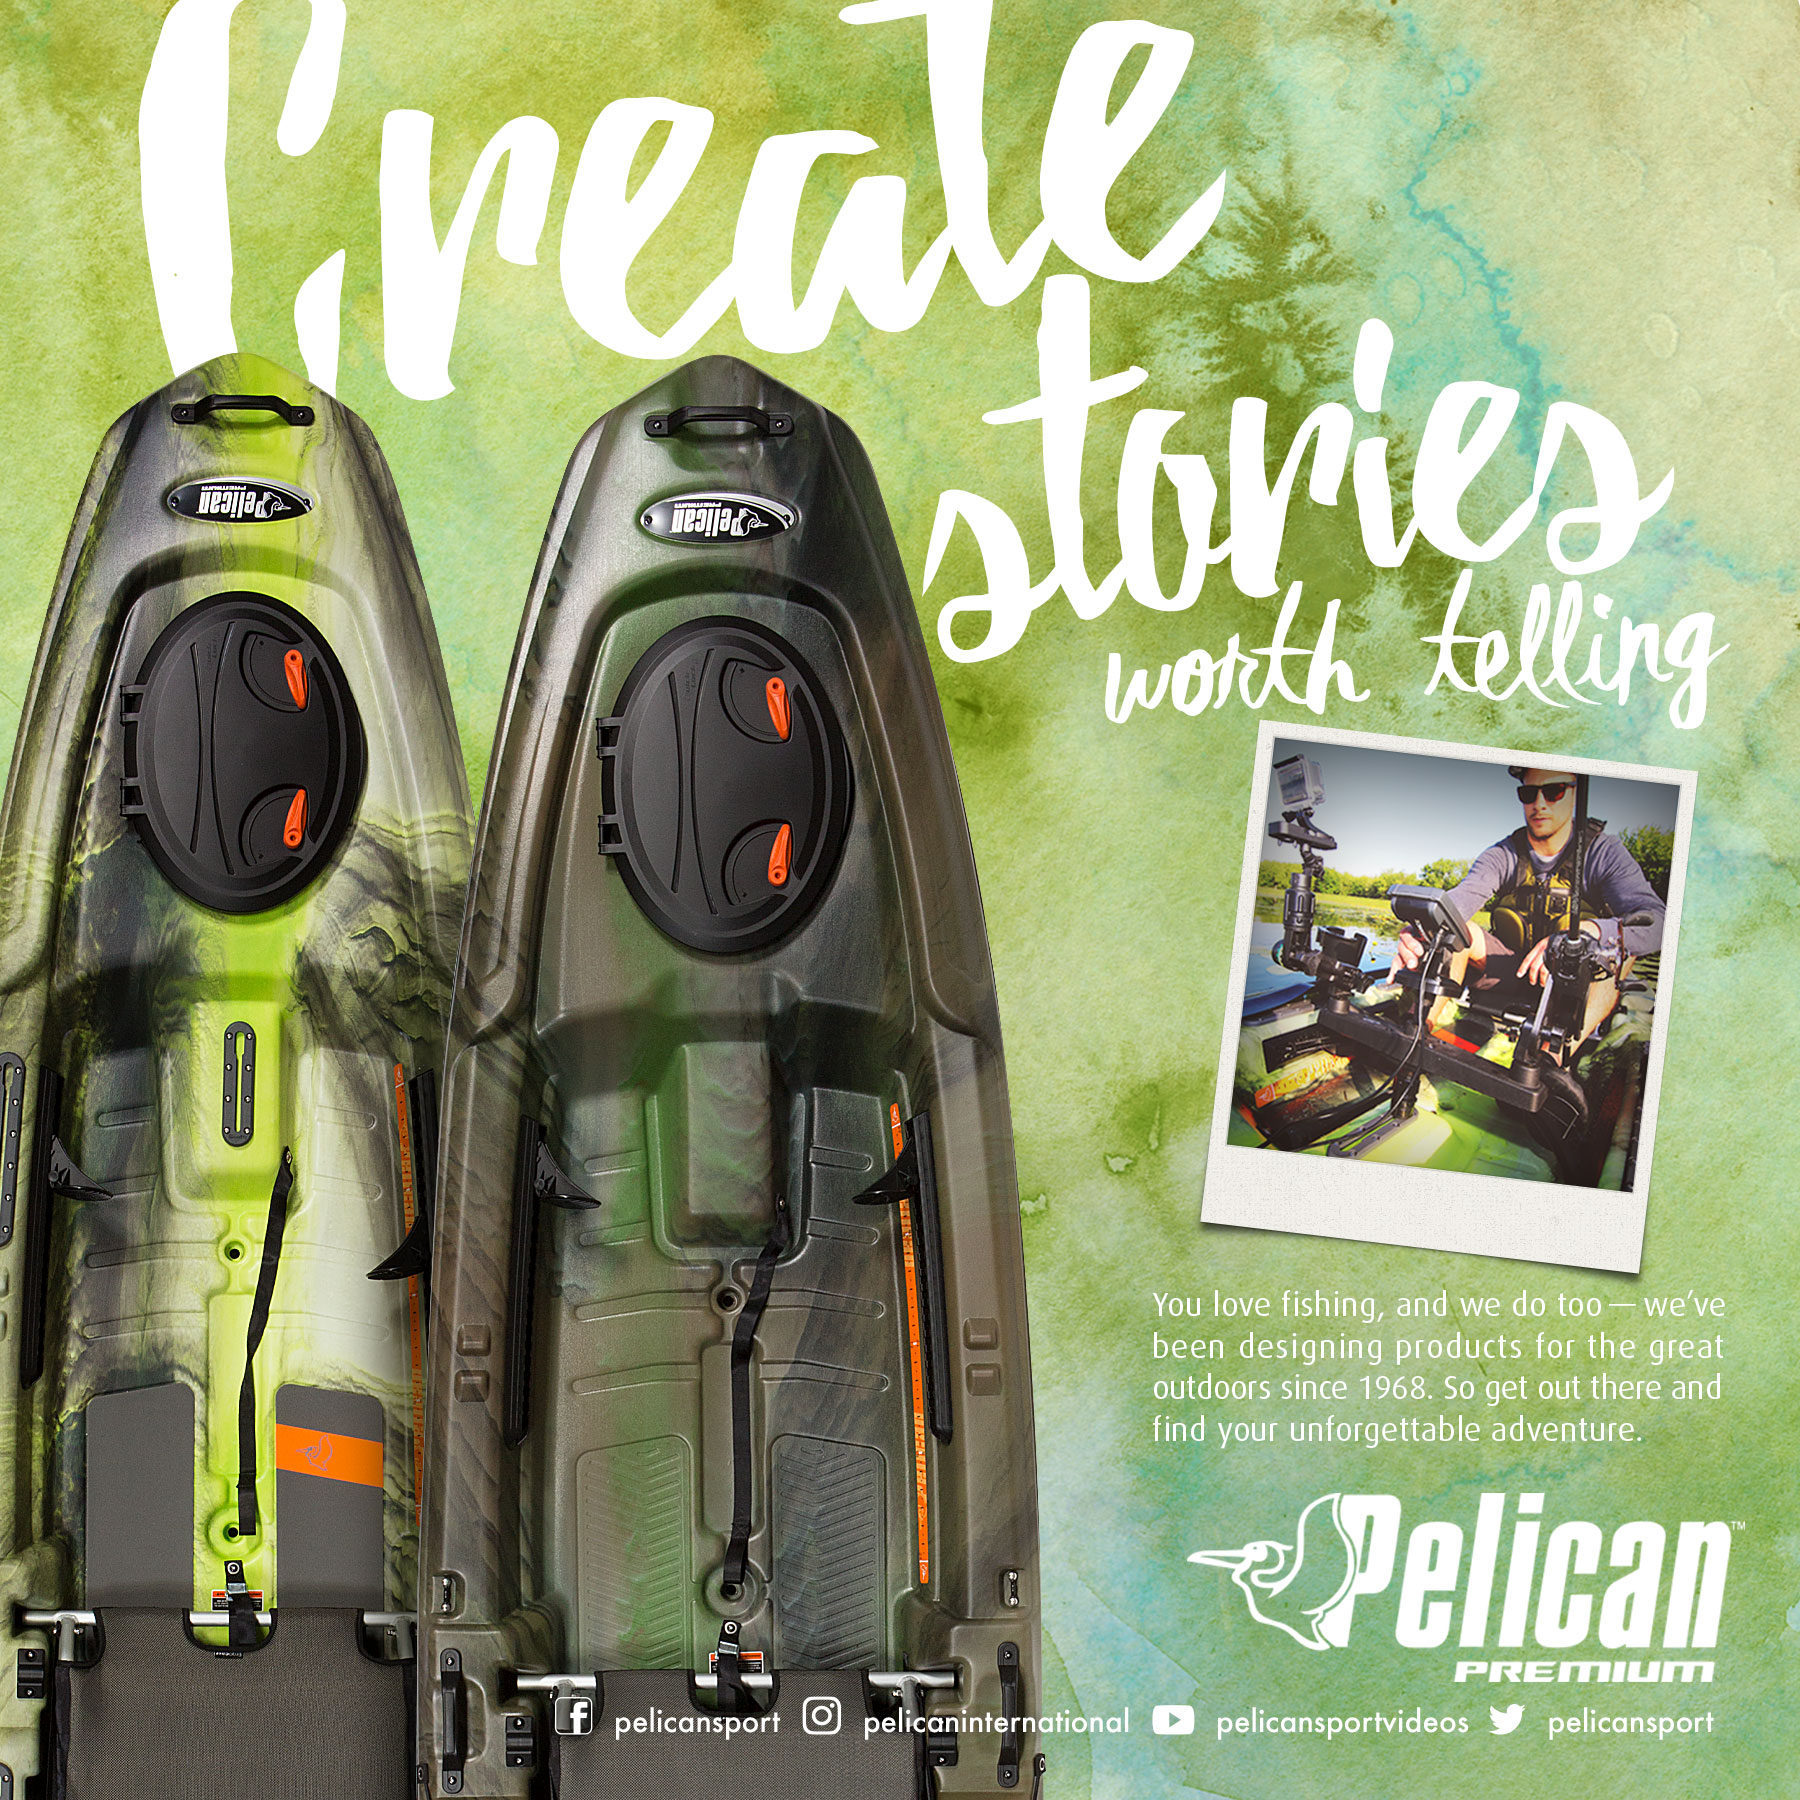 Pelican Fishing Block Ad 1200x1200